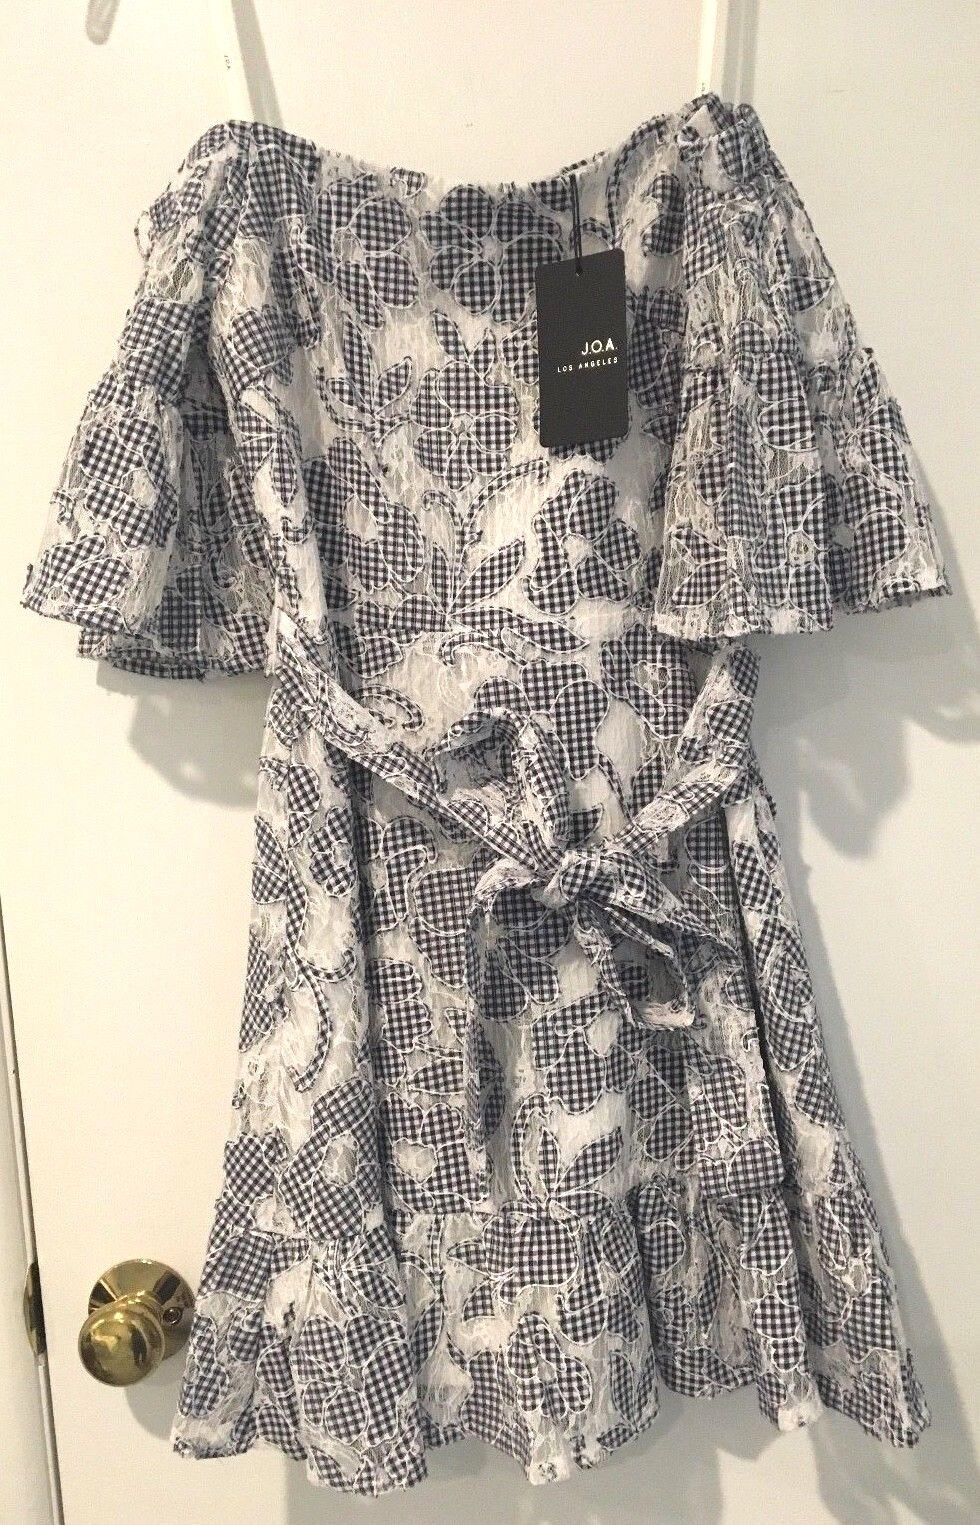 J.O.A. J.O.A. J.O.A. Floral Lace Off The Shoulder Dress in Navy & White Size XS b6801f